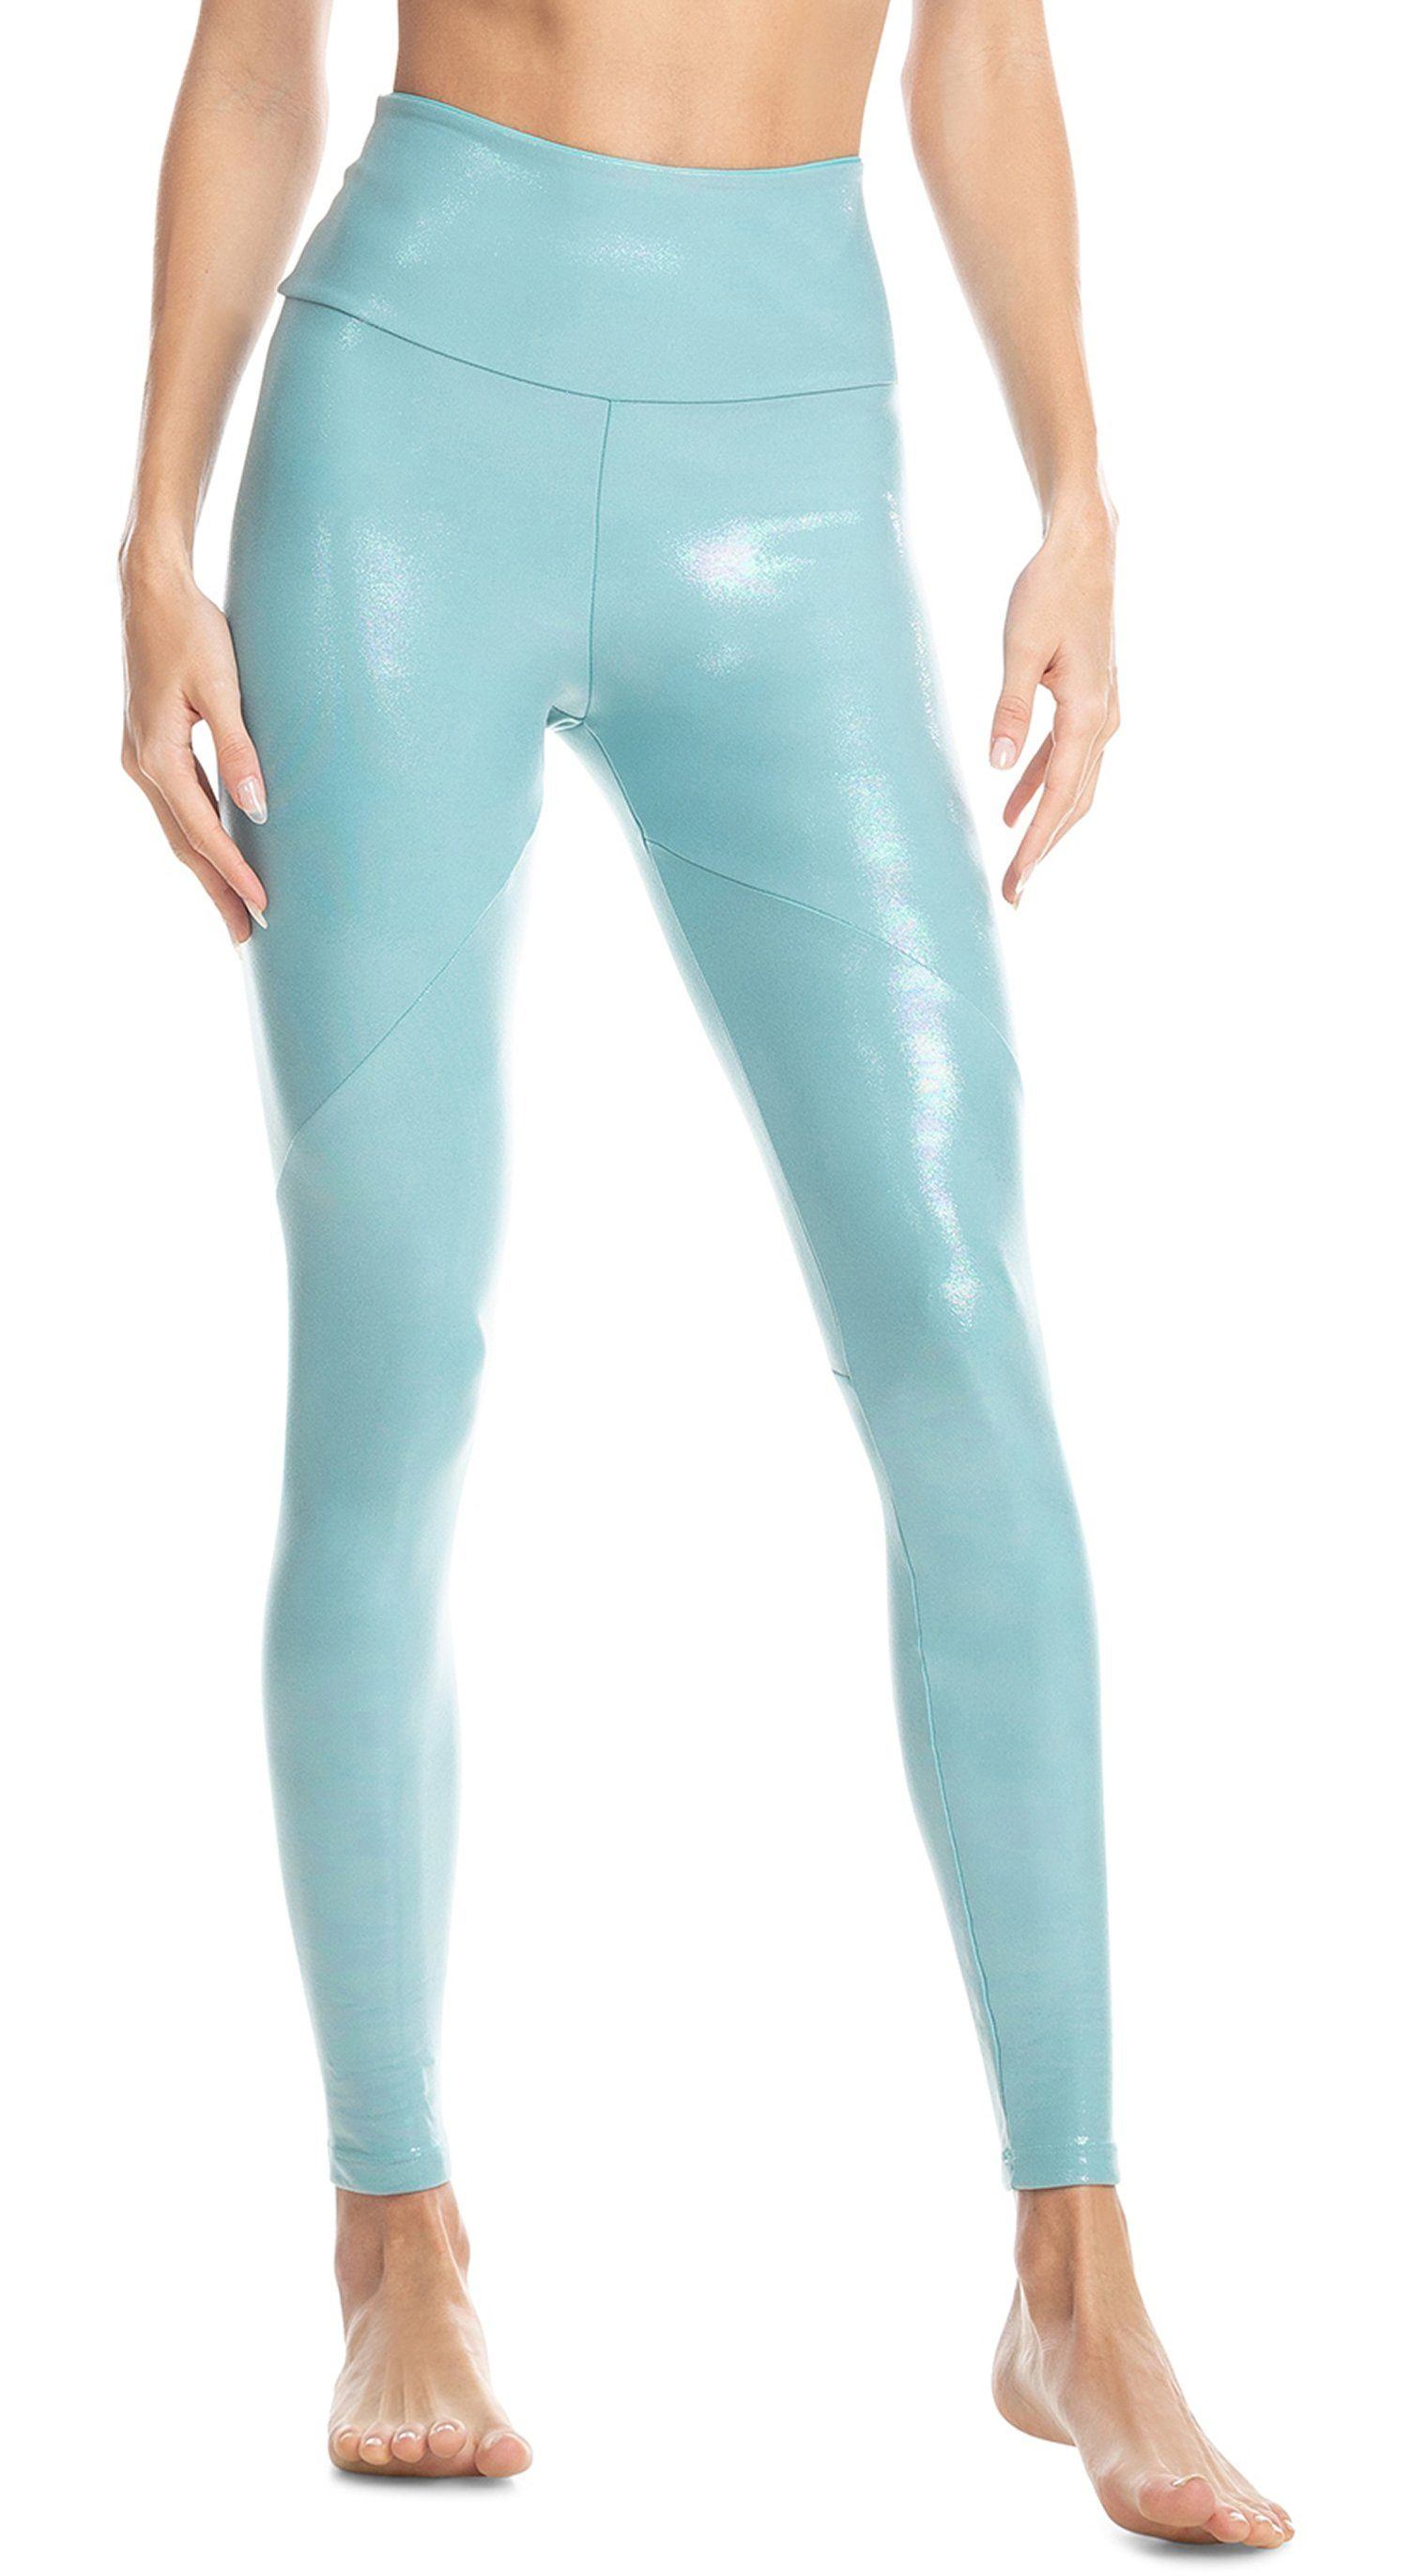 Brazilian Legging - Regeneration Tight Green Foil